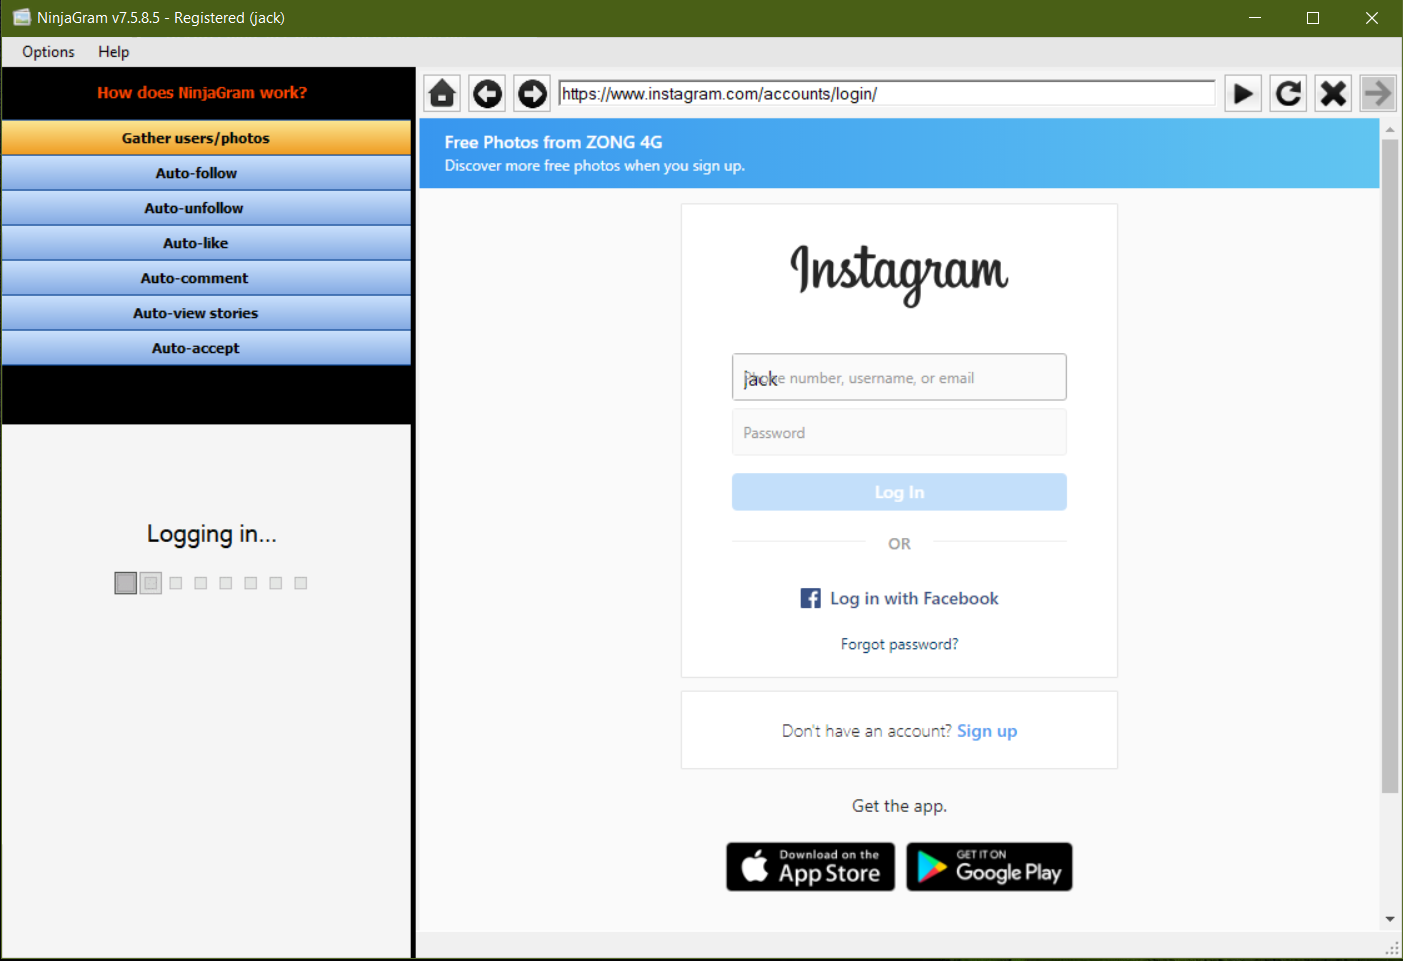 NinjaGram Crack 7.6.4.2 Instagram bot Free Download 2020